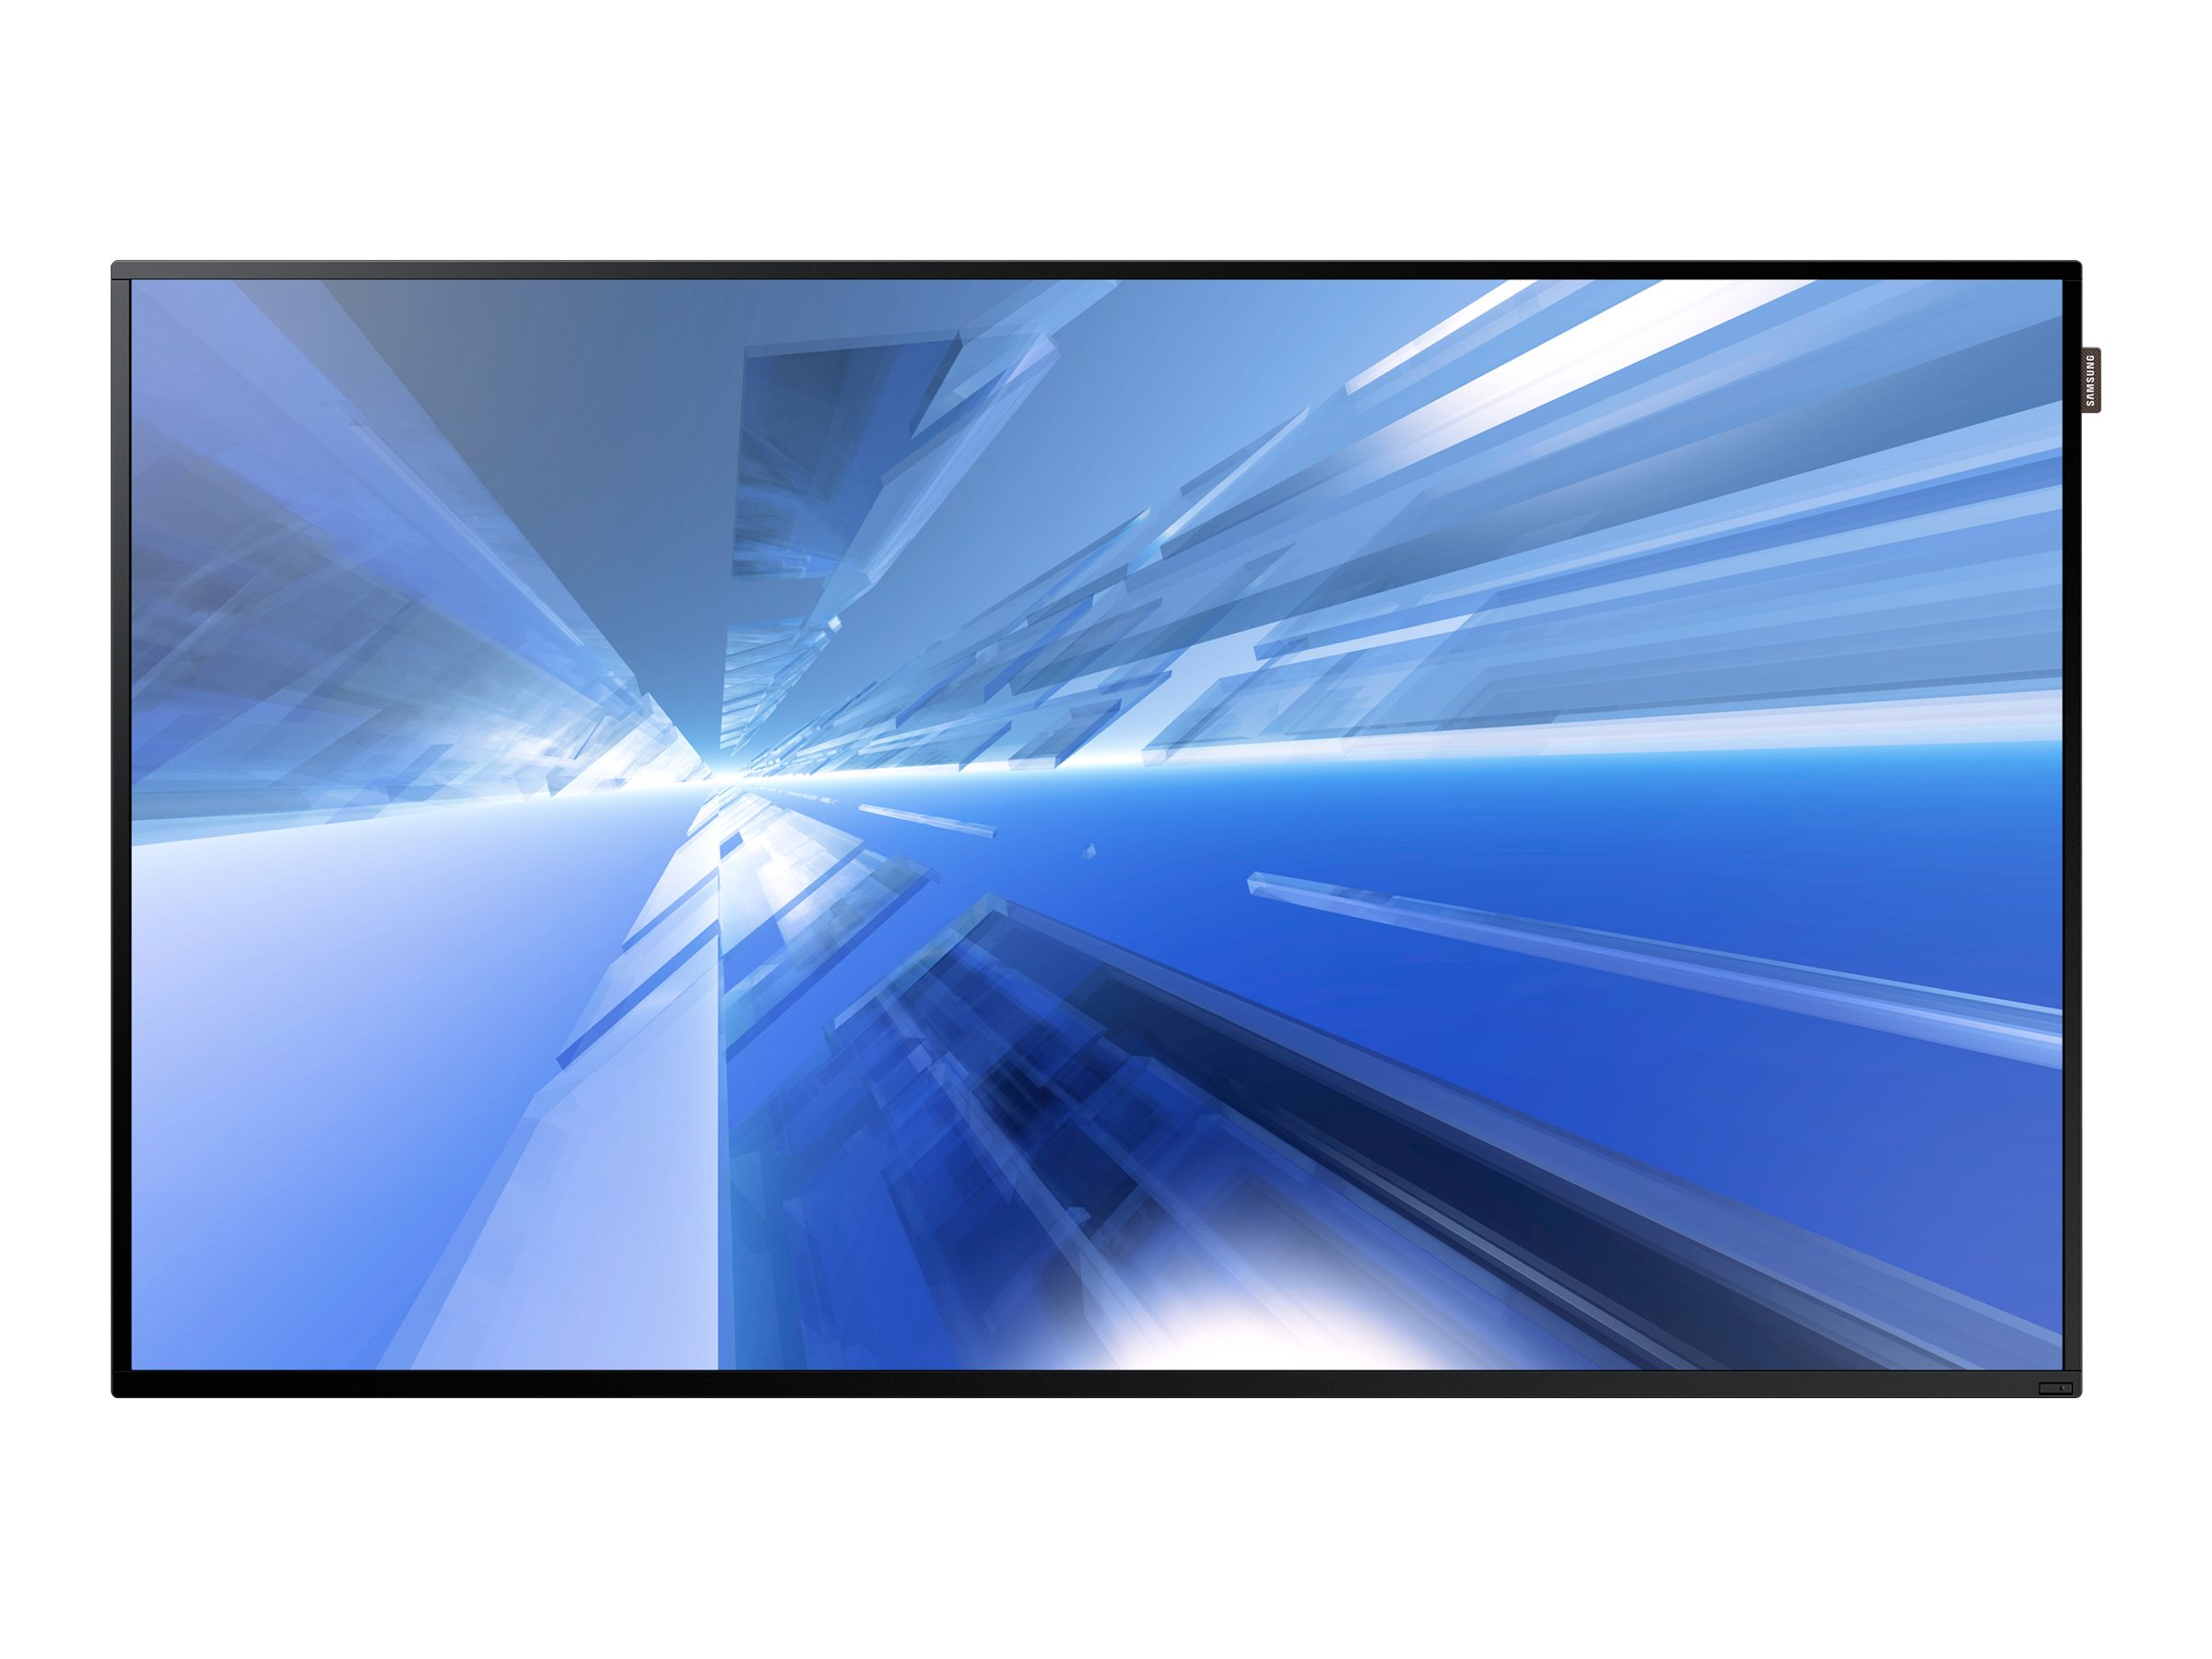 Samsung 55 DM-E Full HD LED-LCD Display, Black, DM55E